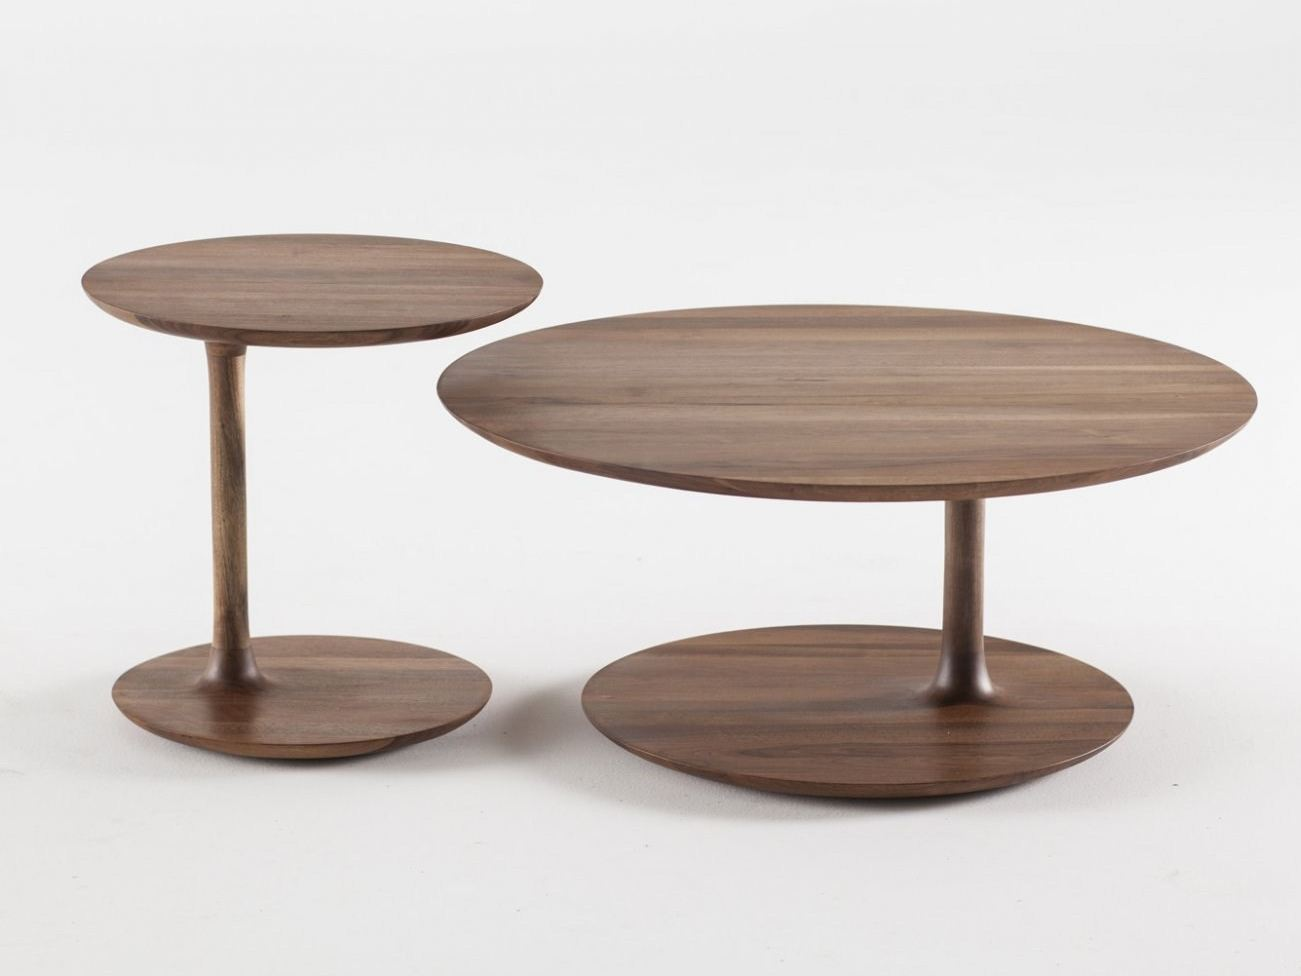 Low Round Wooden Coffee Table Bloop By Artisan Design Rudjer Novak Mikulic Marija Ruzic